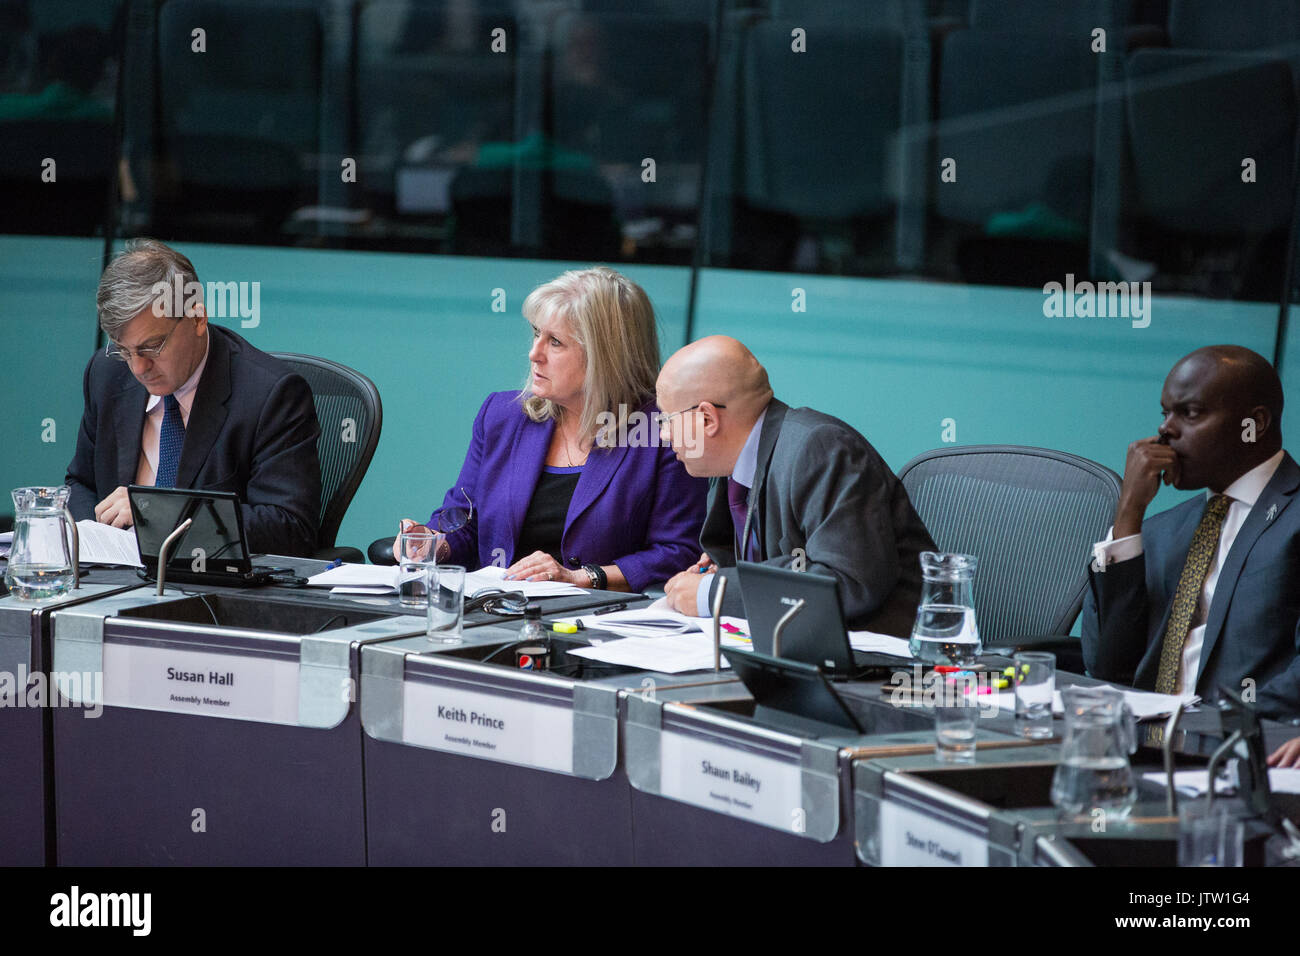 London, UK. 10th August, 2017. London Assembly Members Tony Devenish, Susan Hall, Keith Prince and Shaun Bailey Stock Photo